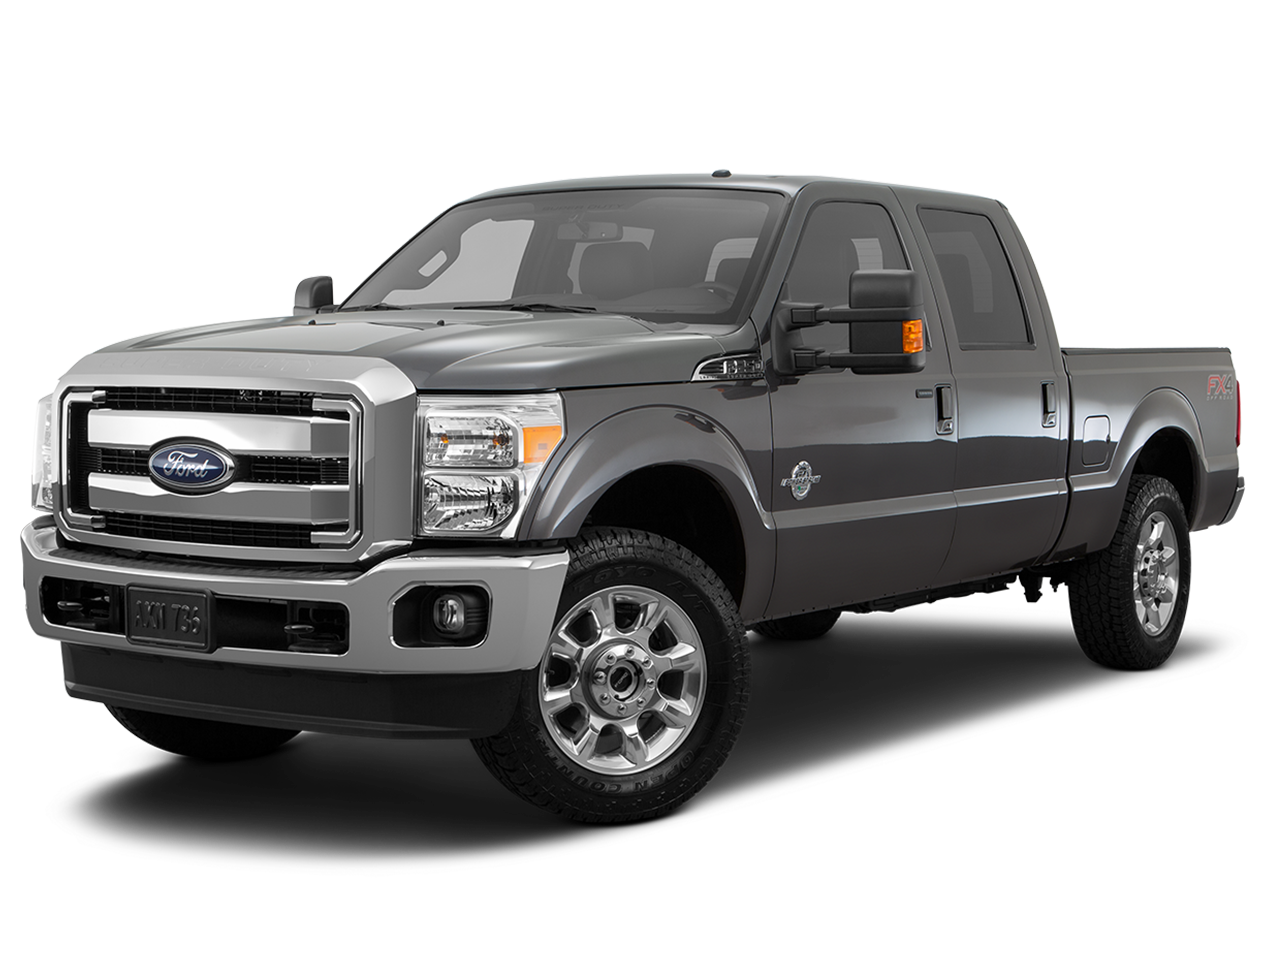 New Ford F-250 at Quirk Ford